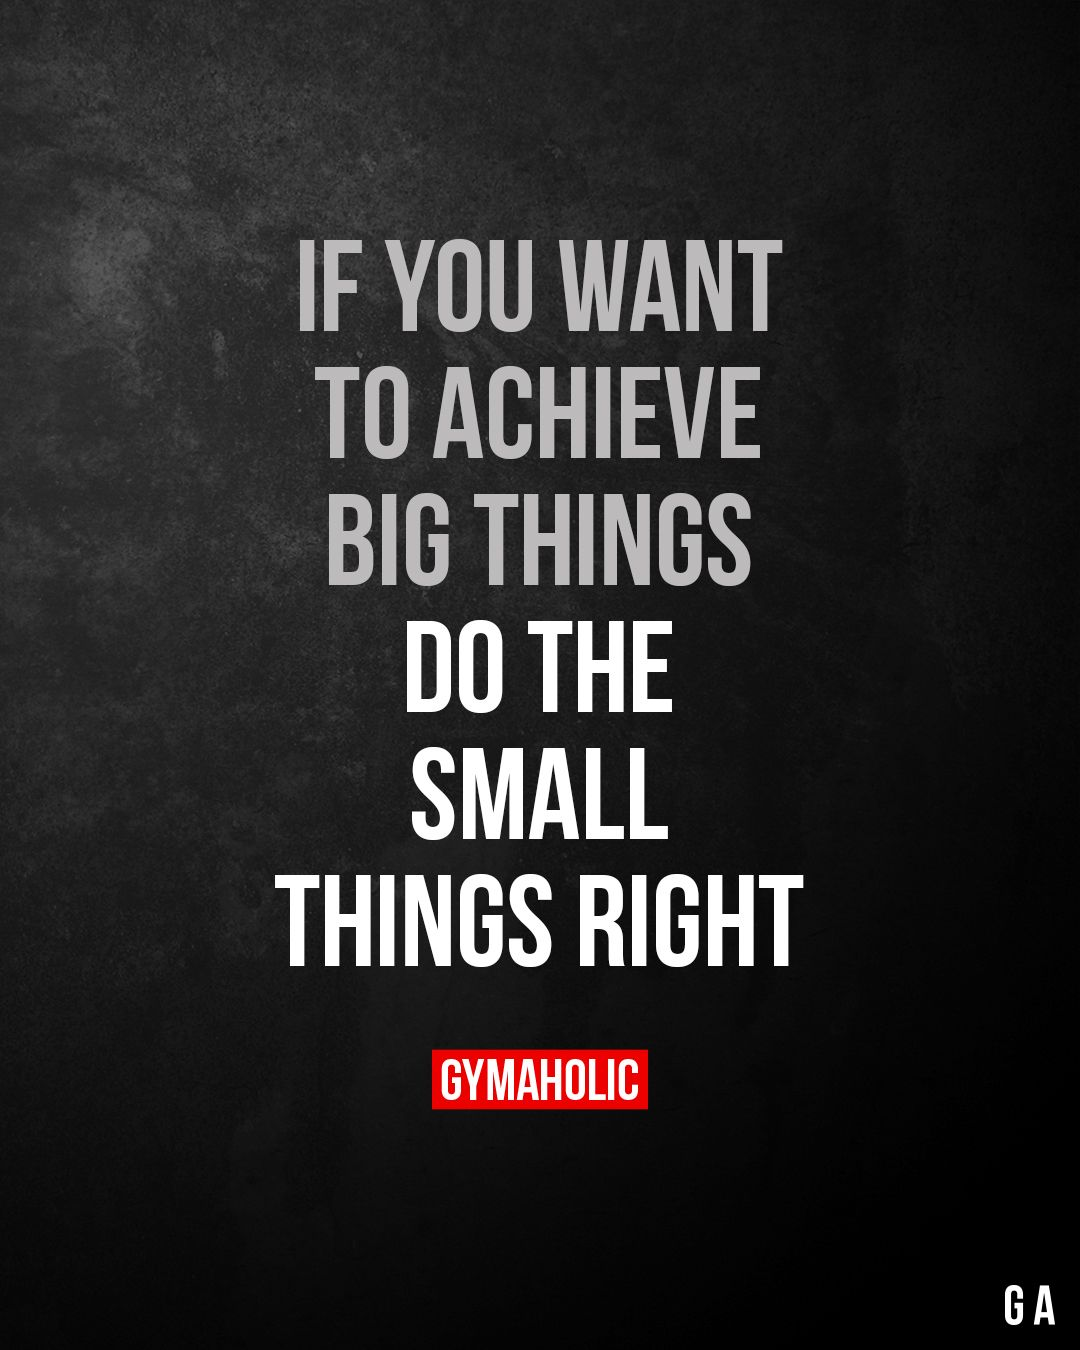 If you want to achieve BIG things Do the small things right